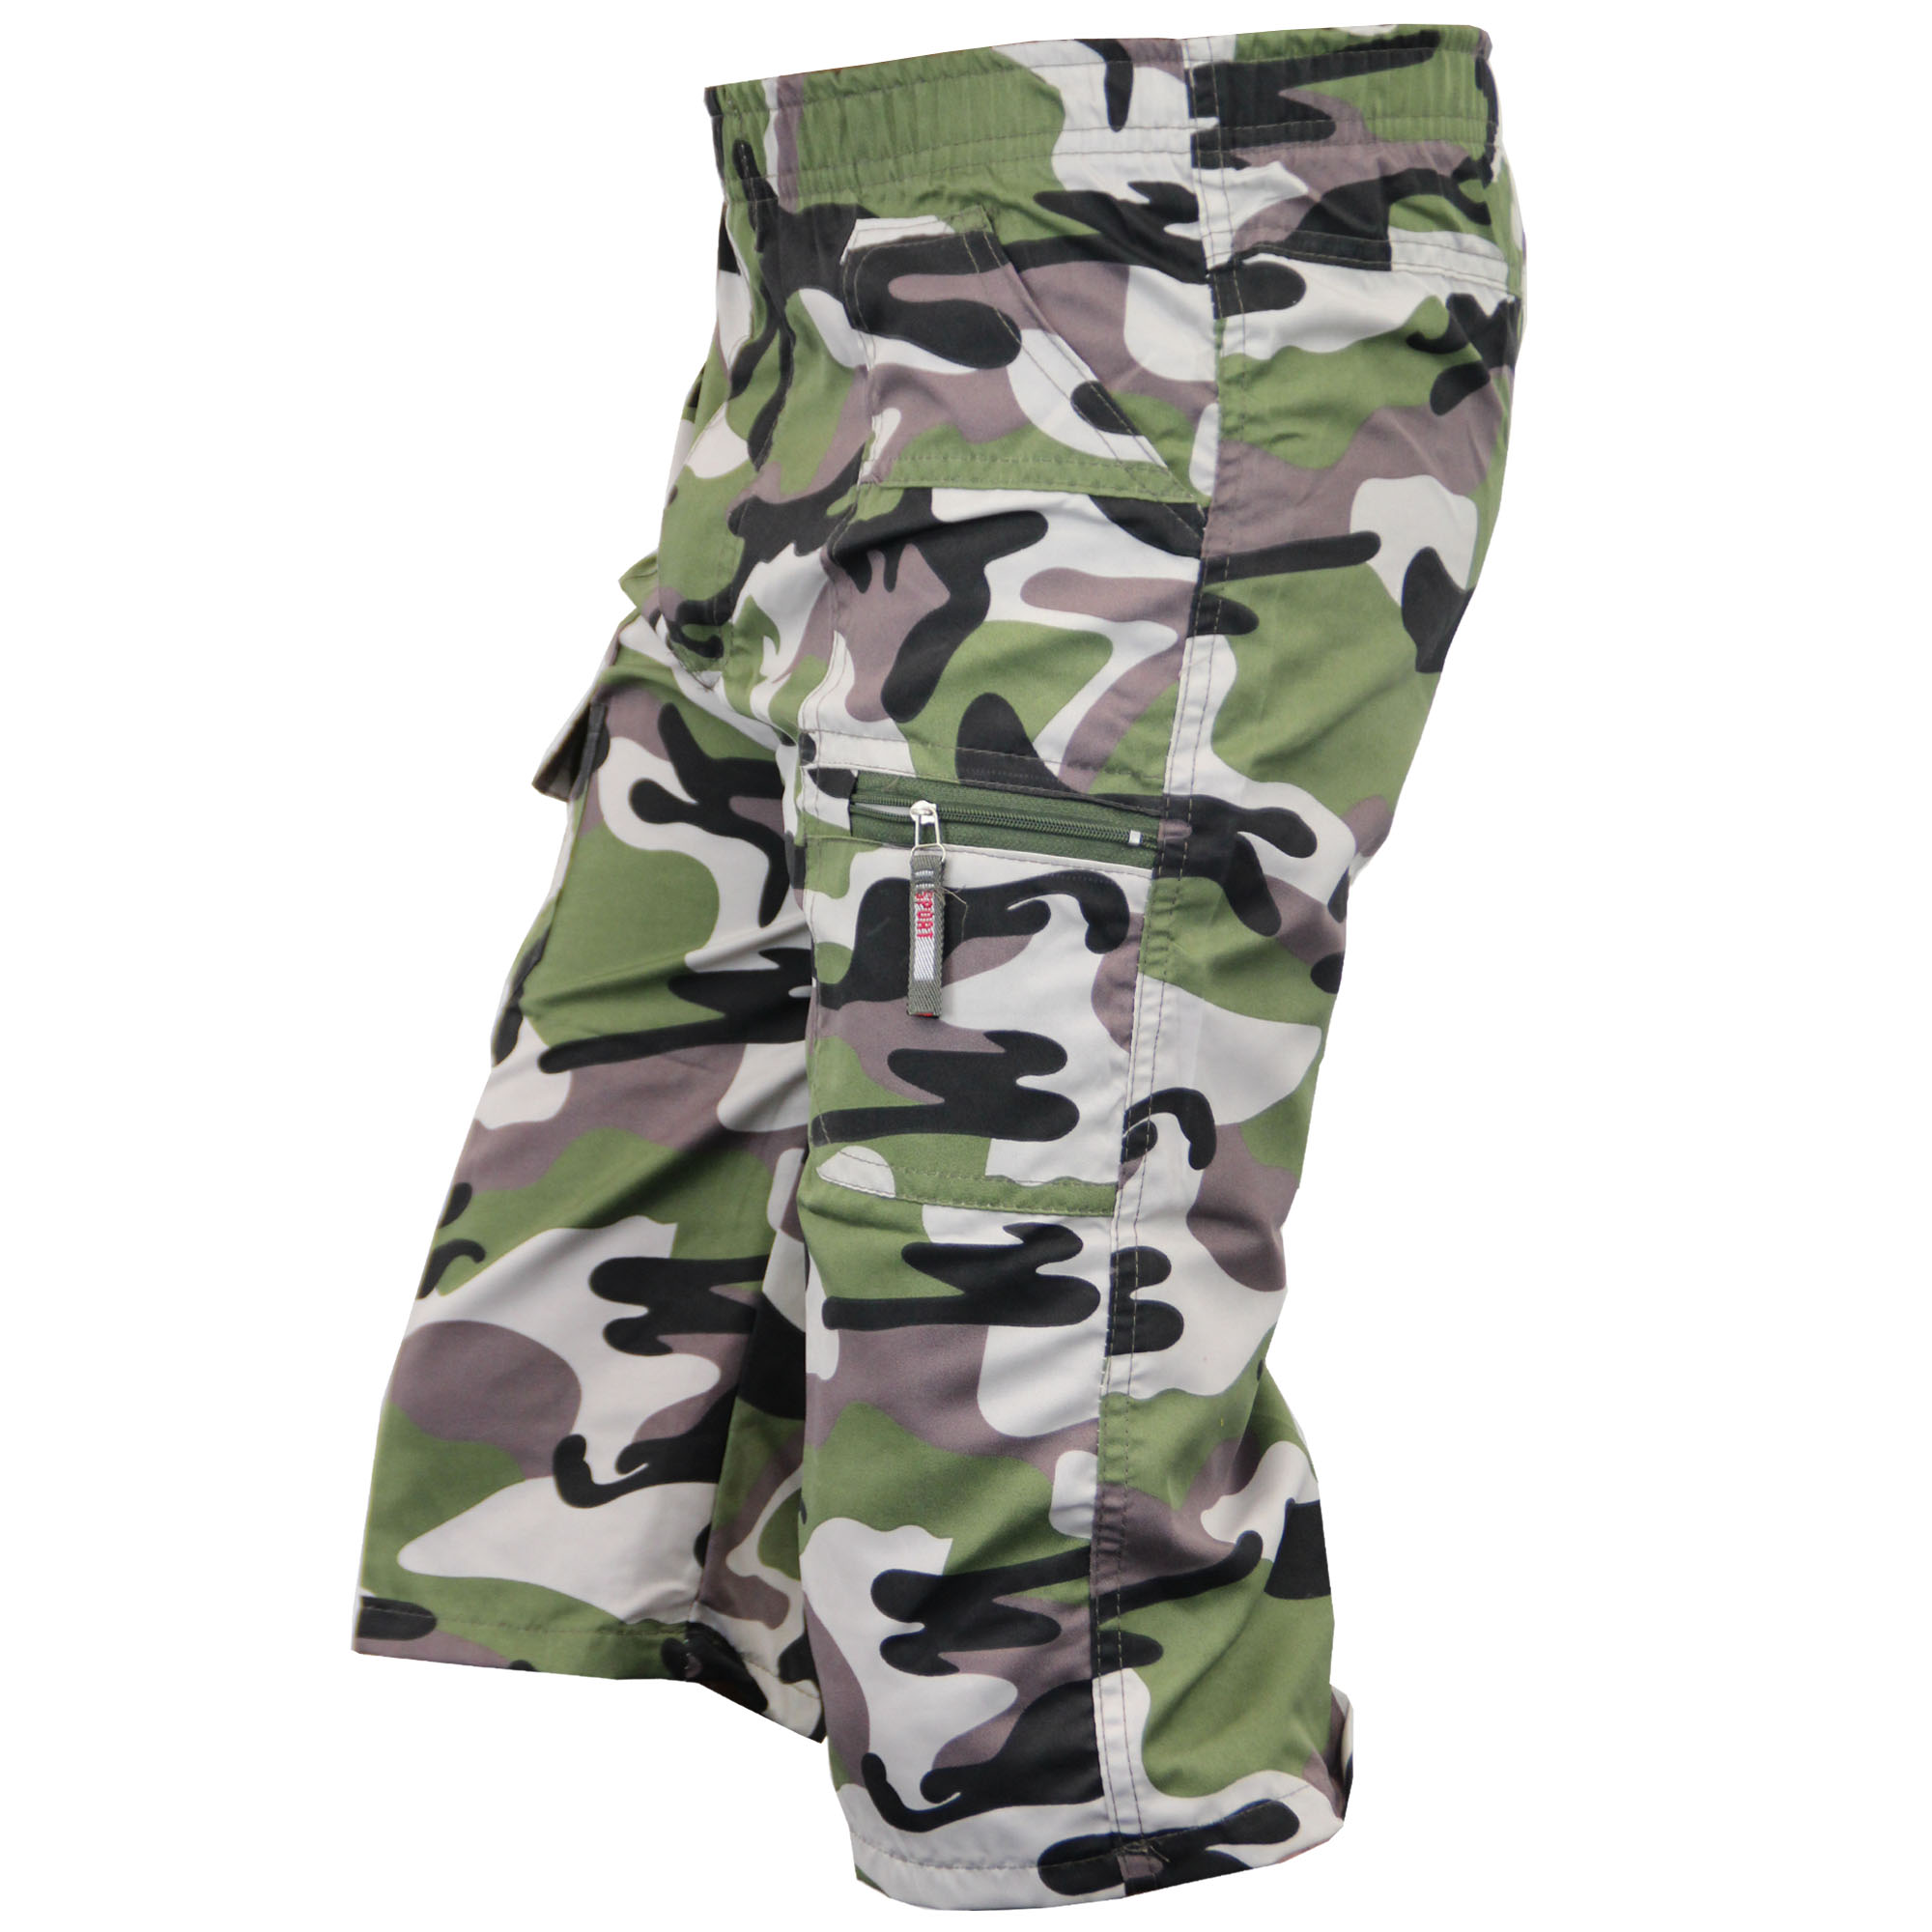 Fatigues Army Navy stocks a full line of Kids Camo Clothing and Adventure Gear. We will outfit the kids in some of the most unique kids camouflage that they can wear from head to toe.